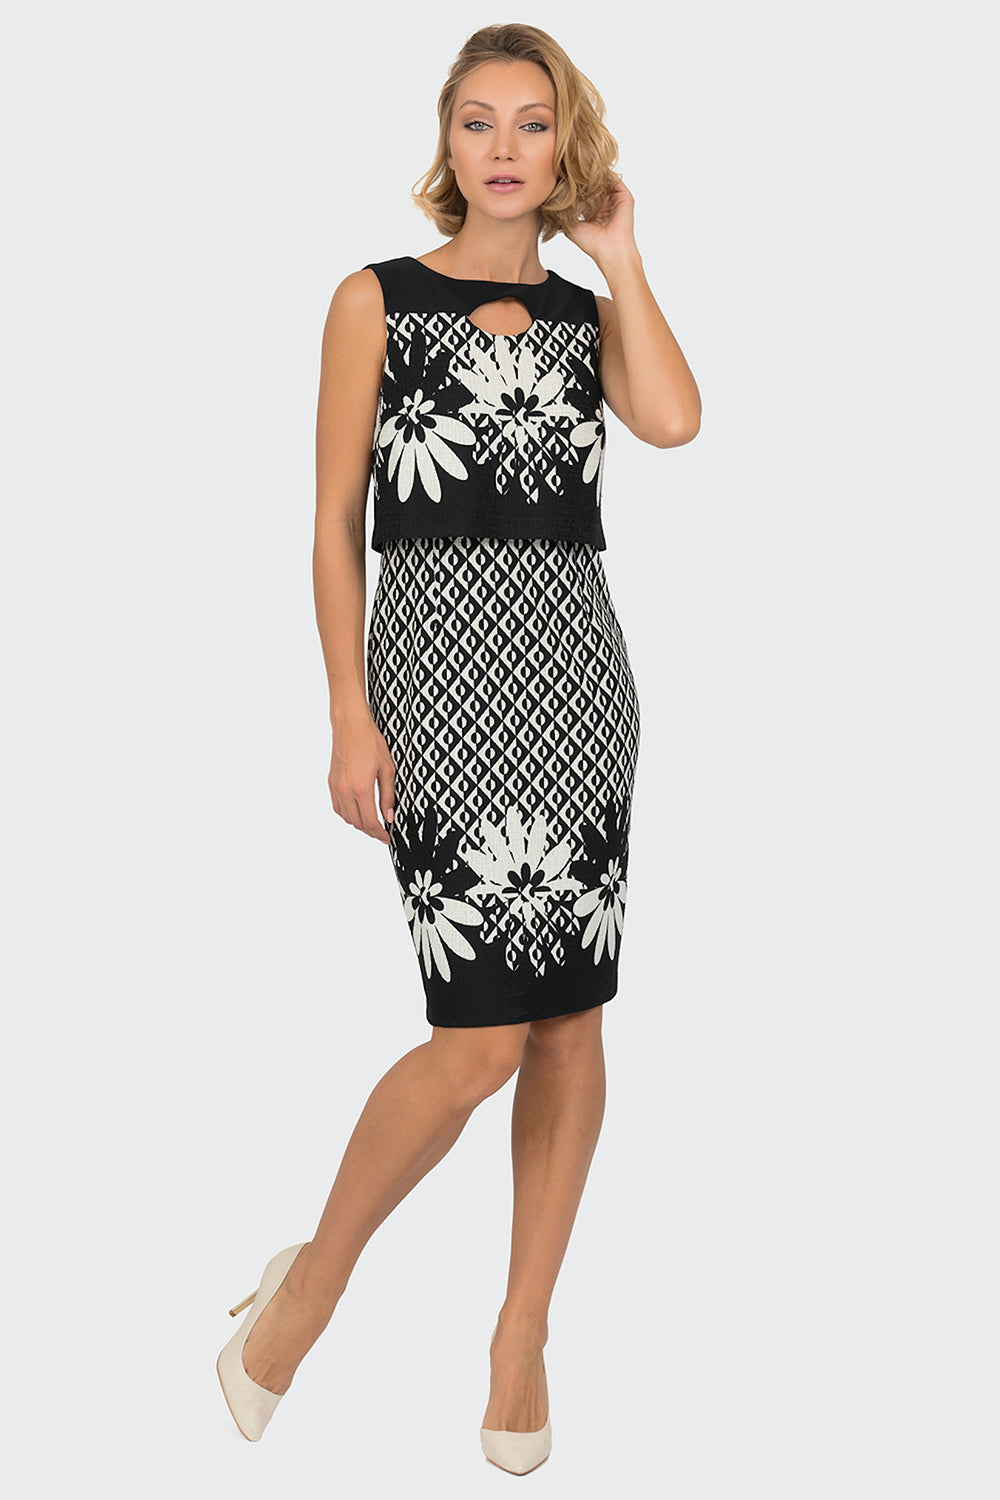 599f76bf8d32 Joseph Ribkoff - James Dress - Black and White - Pizazz Boutique